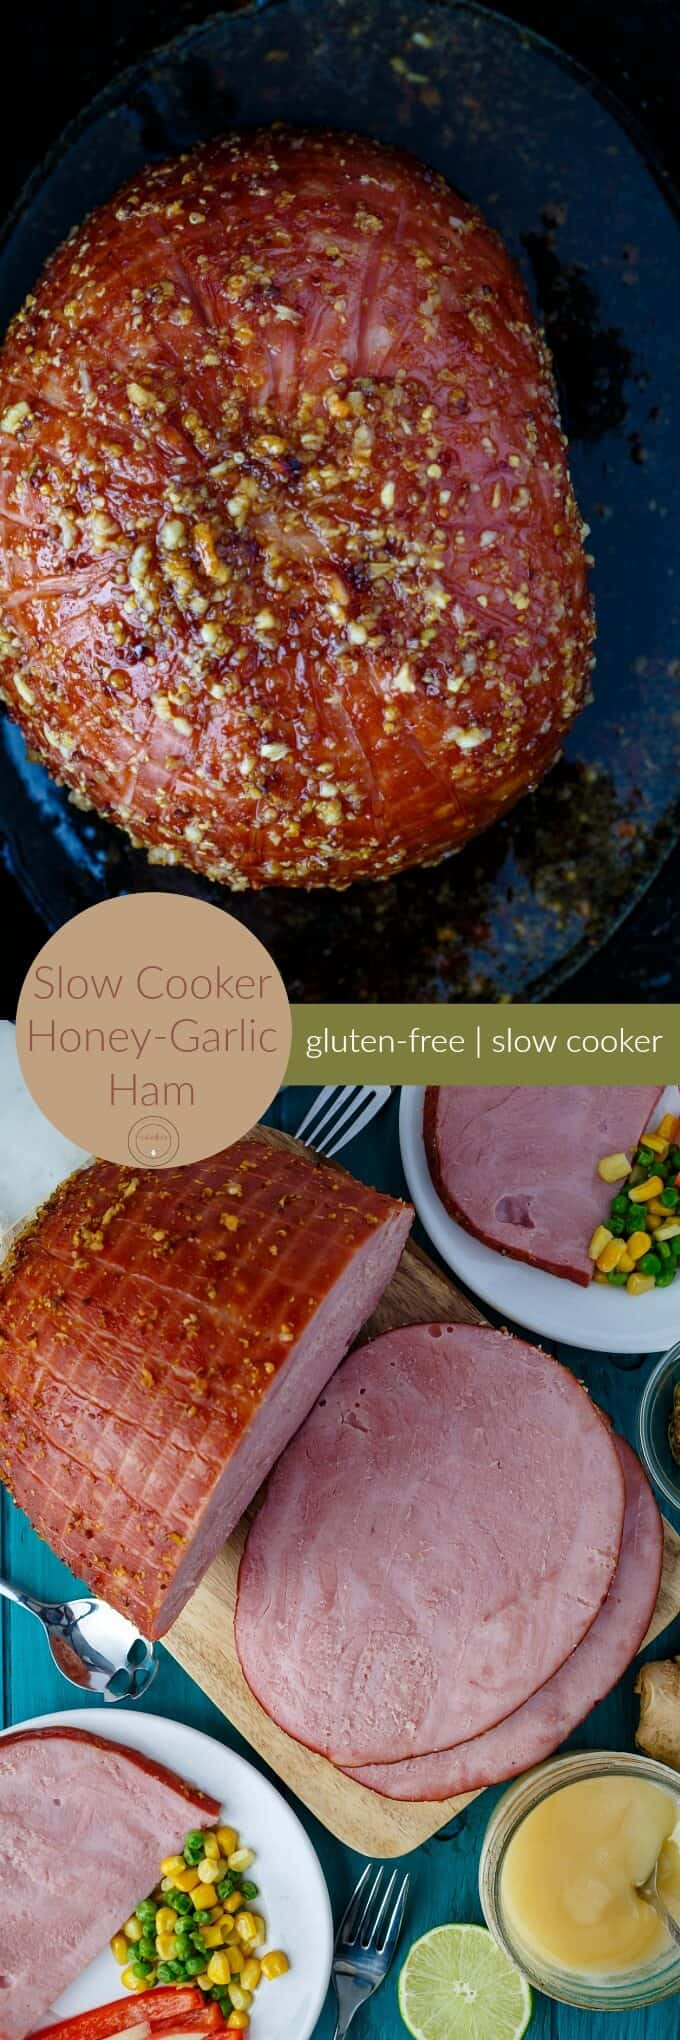 Slow Cooker Honey-Garlic Ham